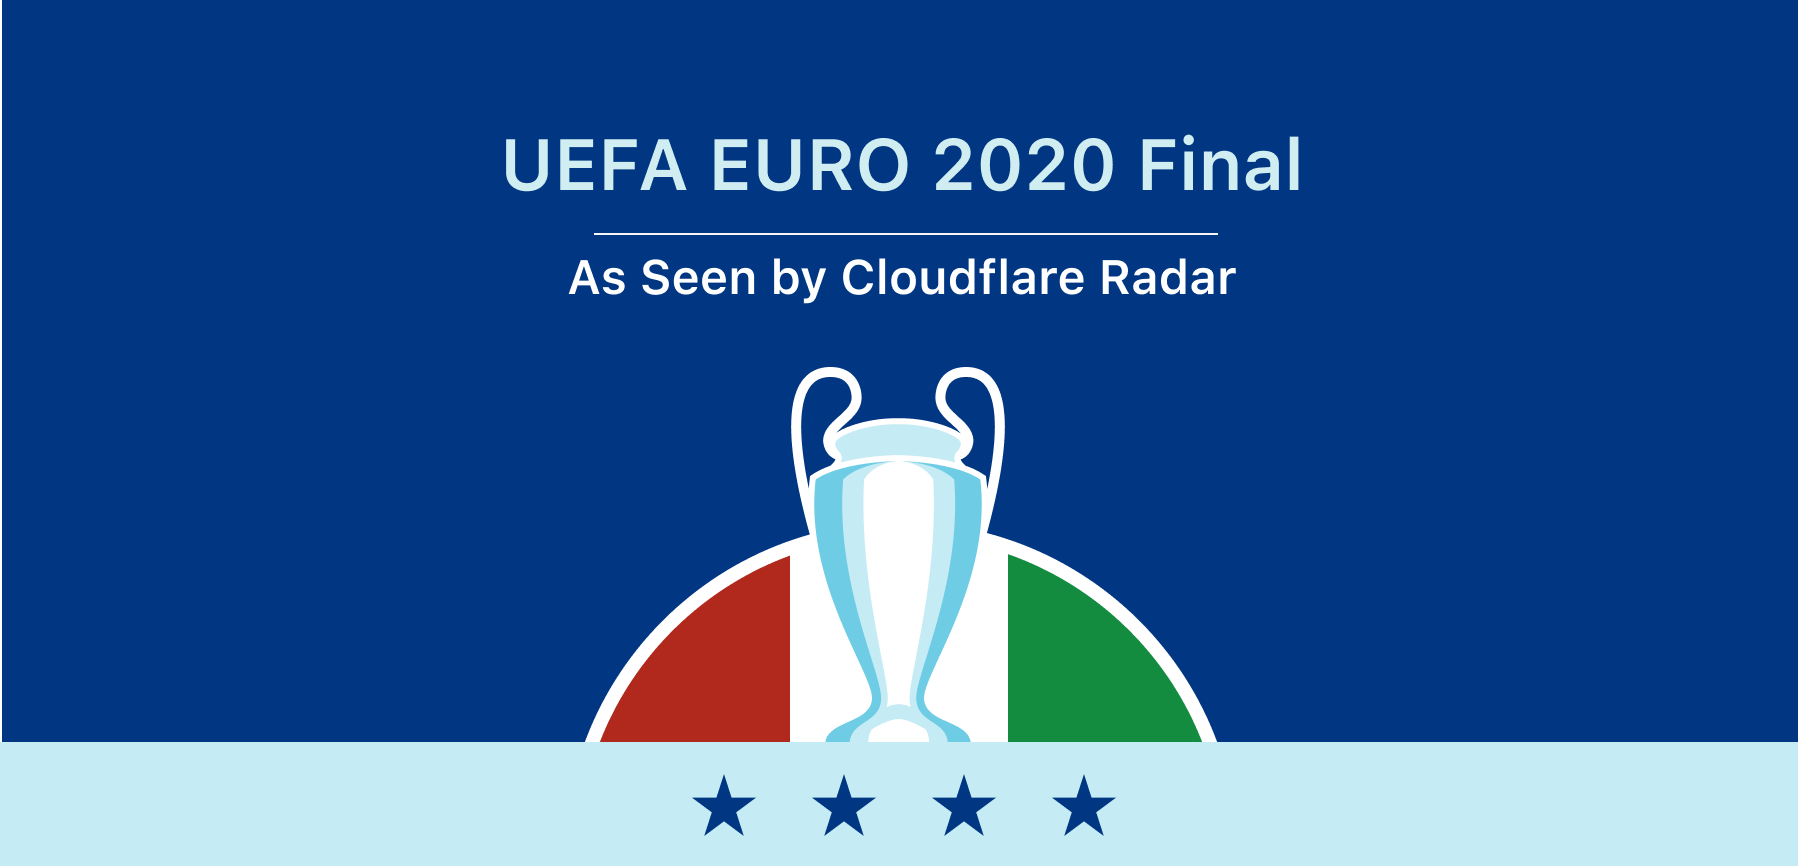 The UEFA EURO 2020 final as seen online by Cloudflare Radar